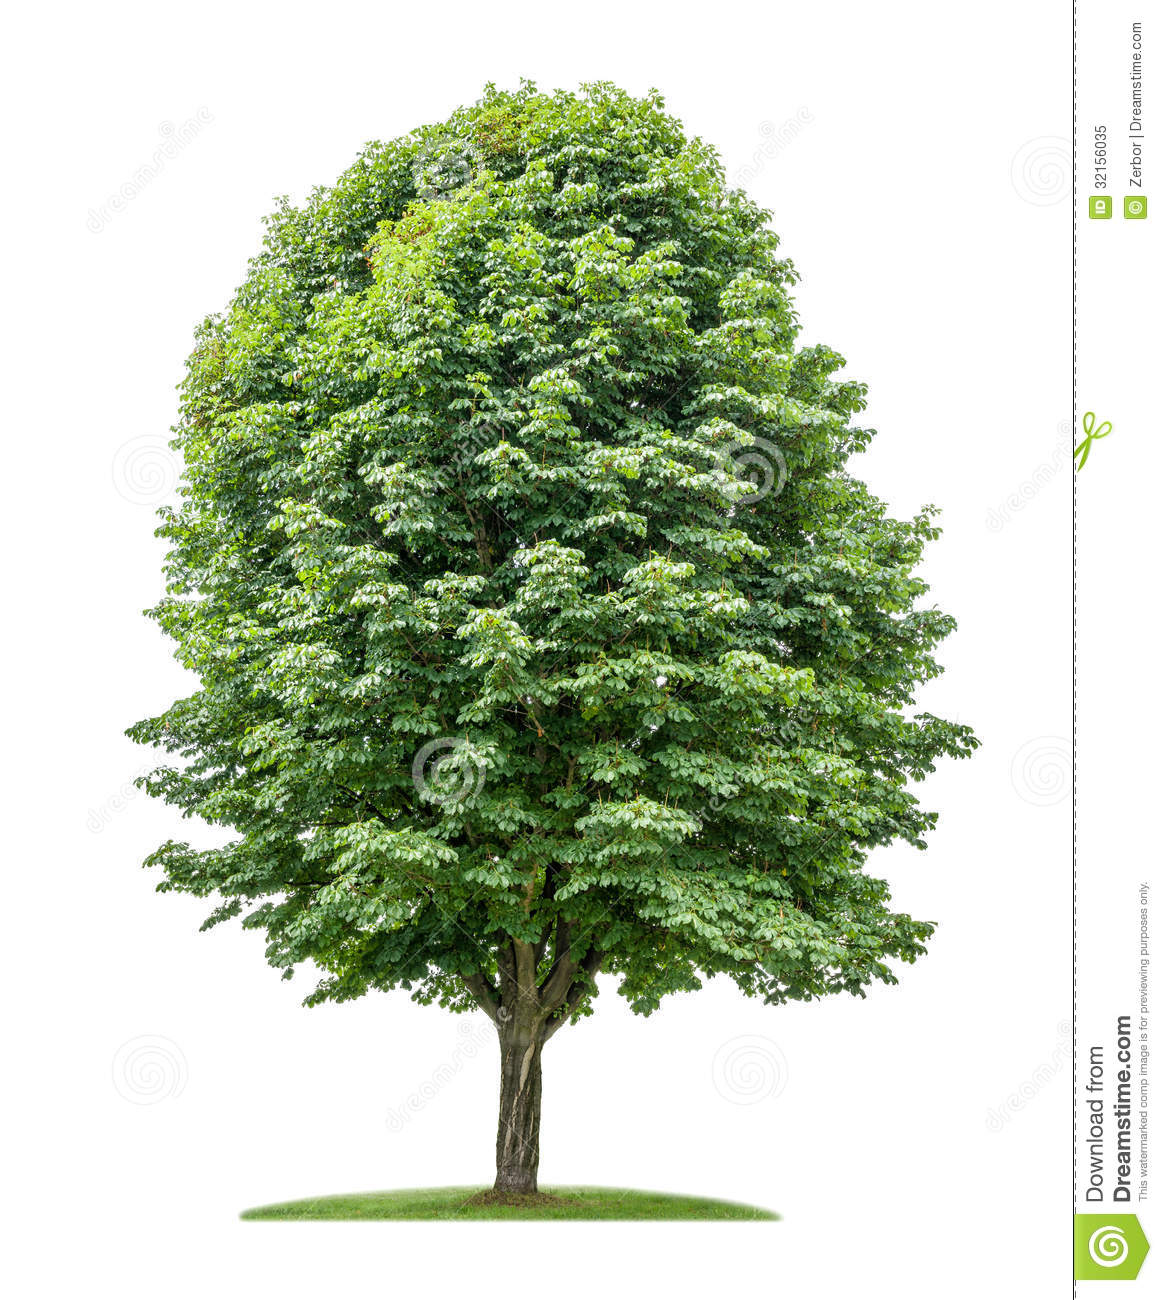 Isolated Horse Chestnut Tree Royalty Free Stock Photo.